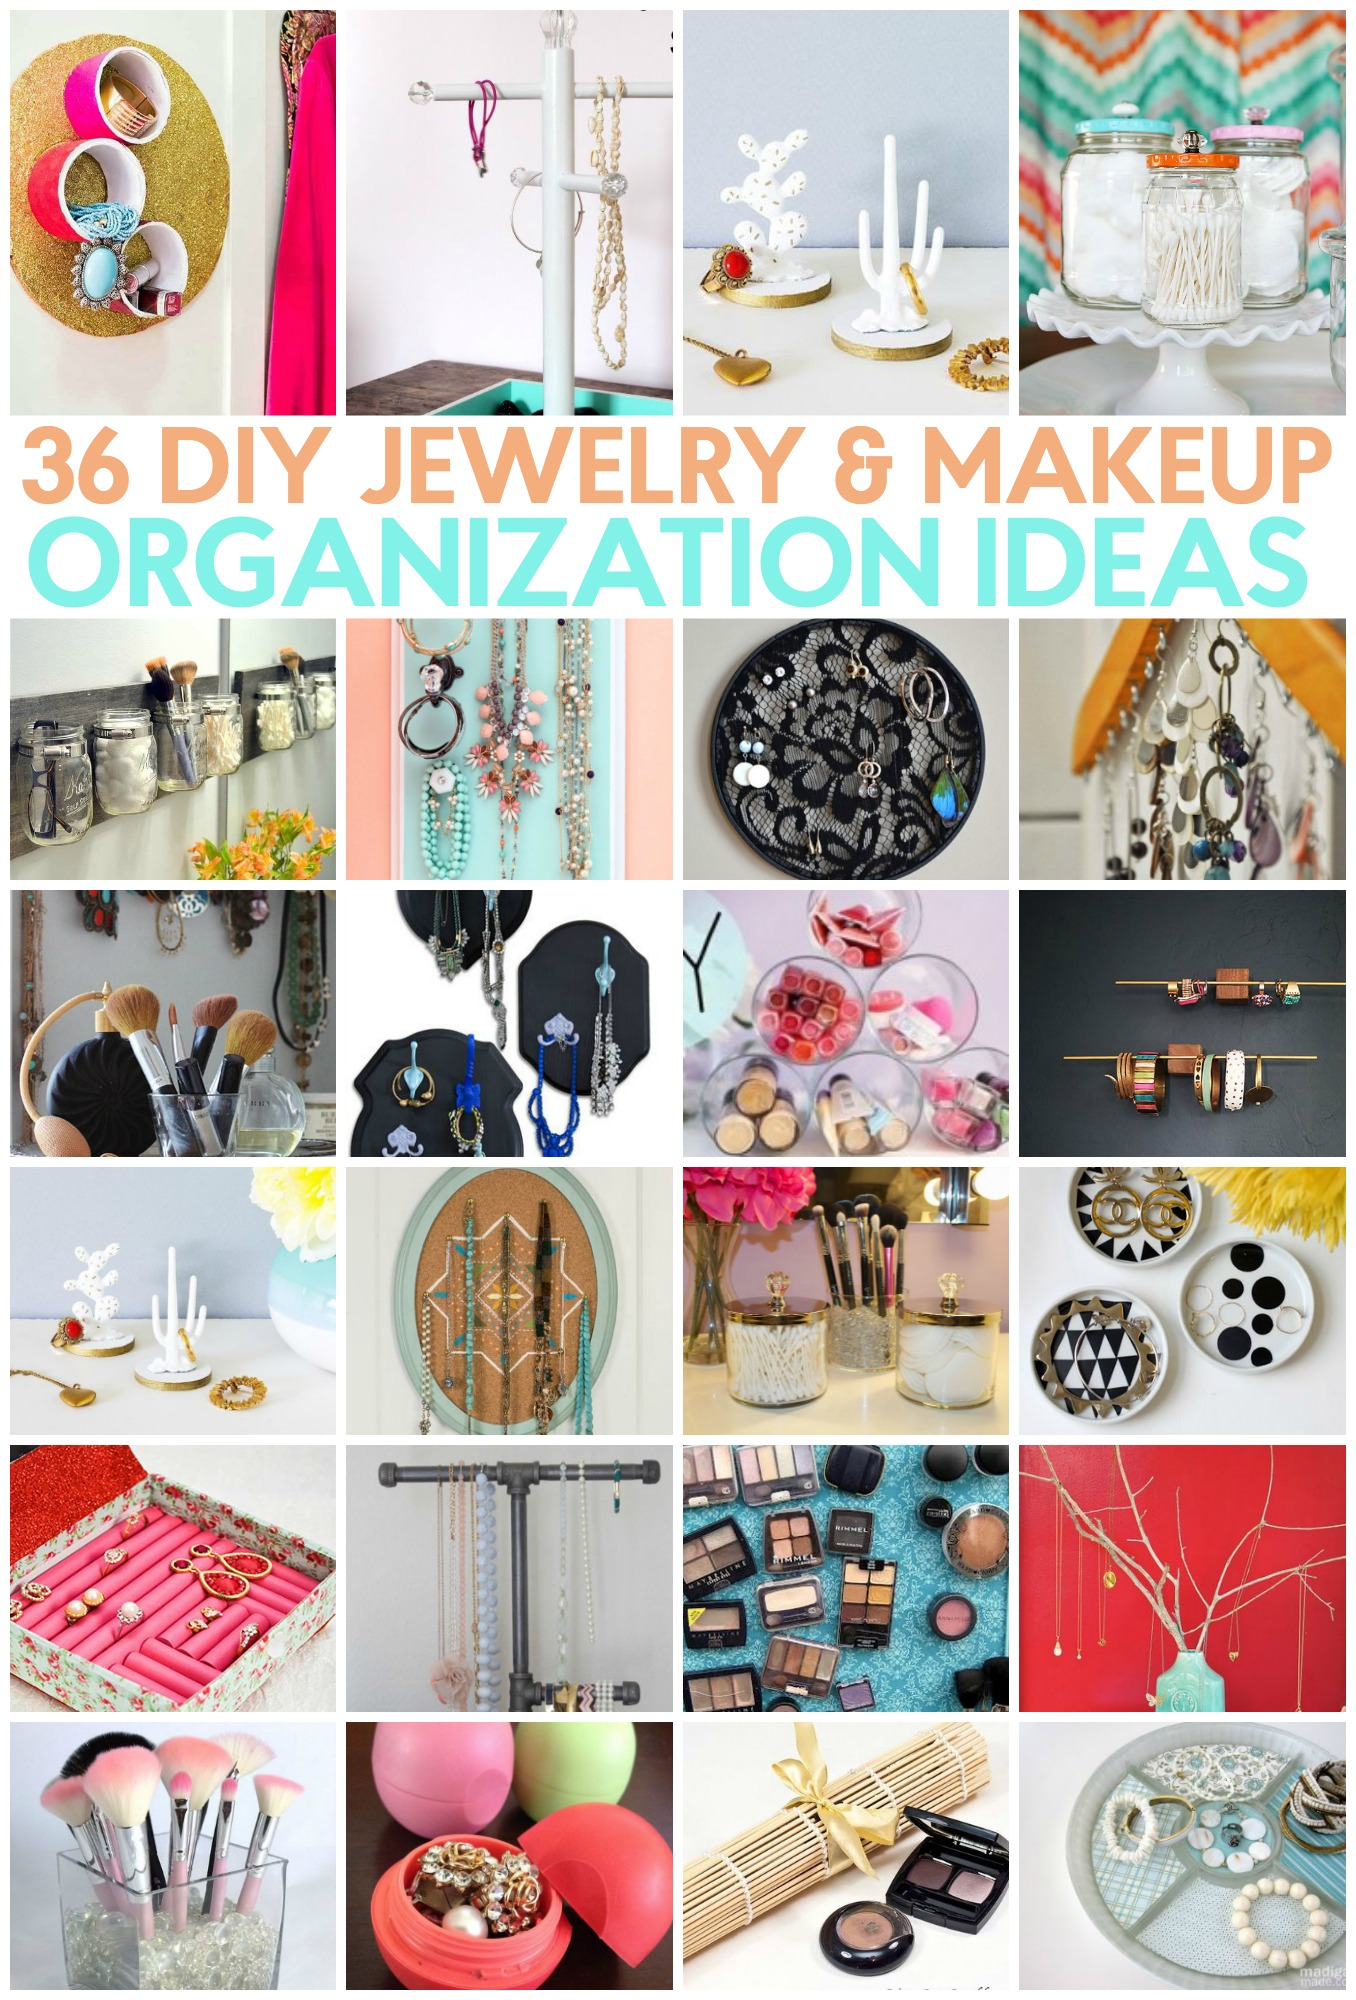 Diy Jewelry Organization Ideas 36 Diy Jewelry And Makeup Organization Ideas A Little Craft In